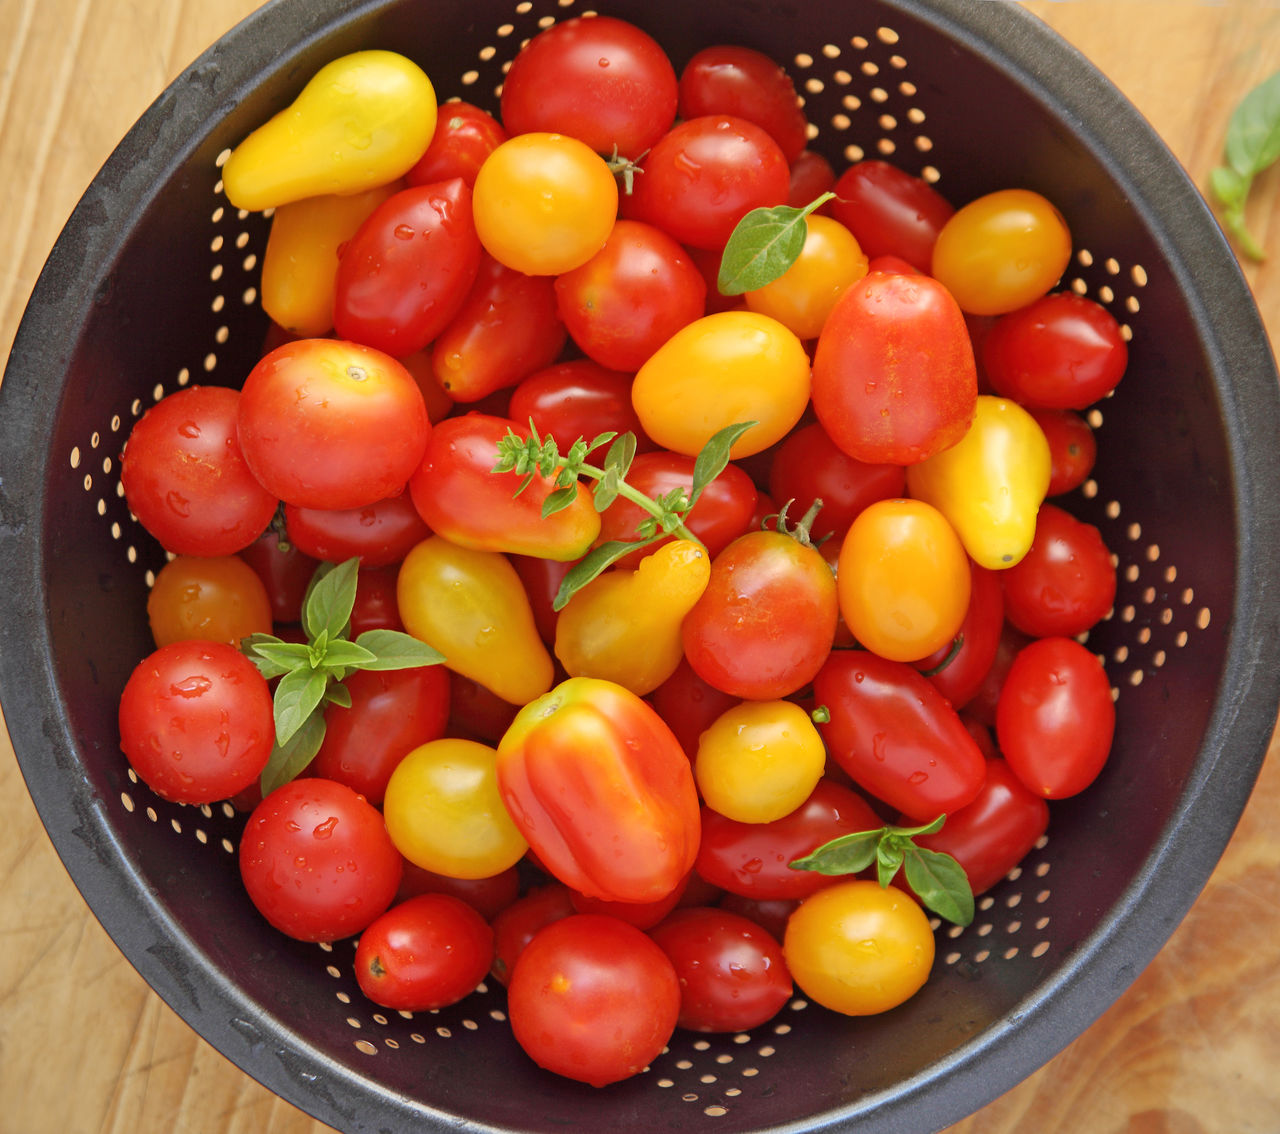 Cherry tomatoes in a dark colander Fresh Produce Natural Light Pear Tomatoes Red Cherry Tomatoes Close-up Colander Colorful Day Food Fresh Herbs  Harvest Healthy Eating Indoors  Leaves Many No People Overhead Seasonal Summer Variety Yellow